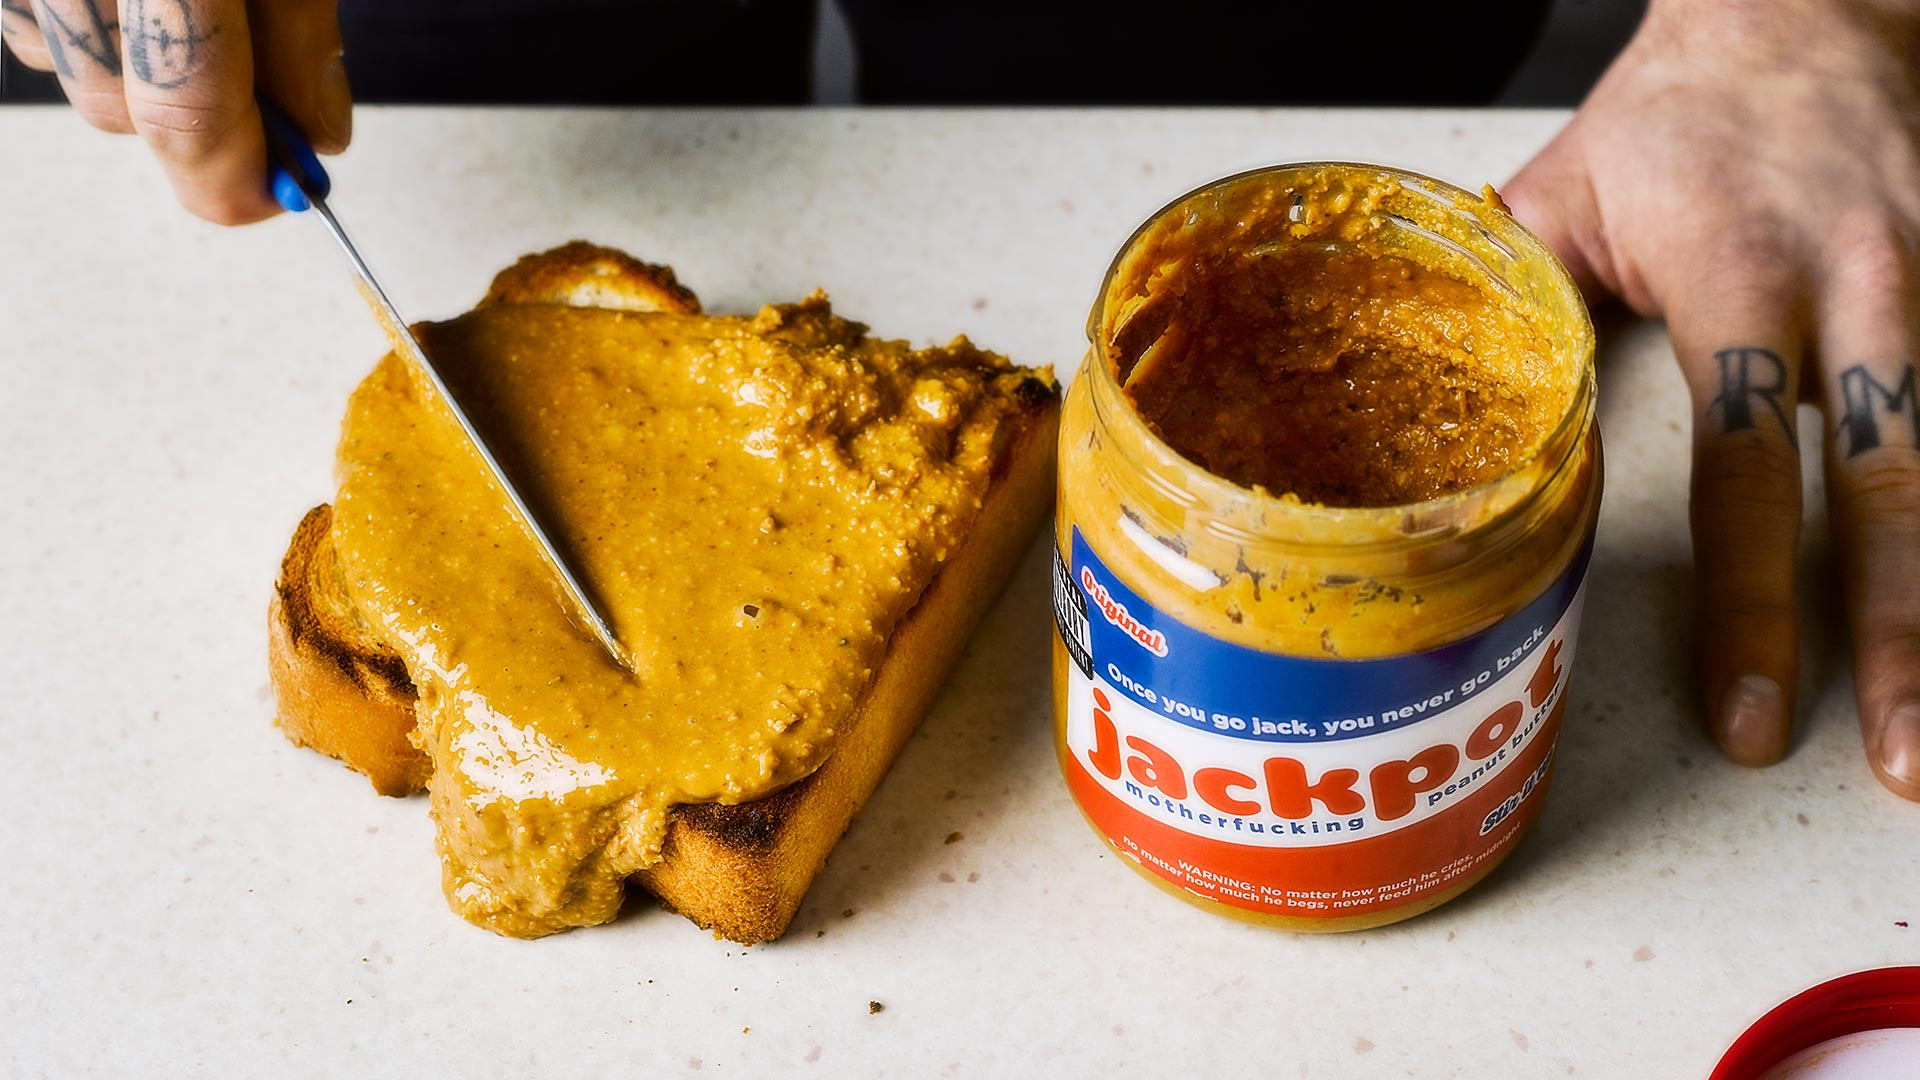 Jackpot Motherfucking Peanut Butter spread over toast